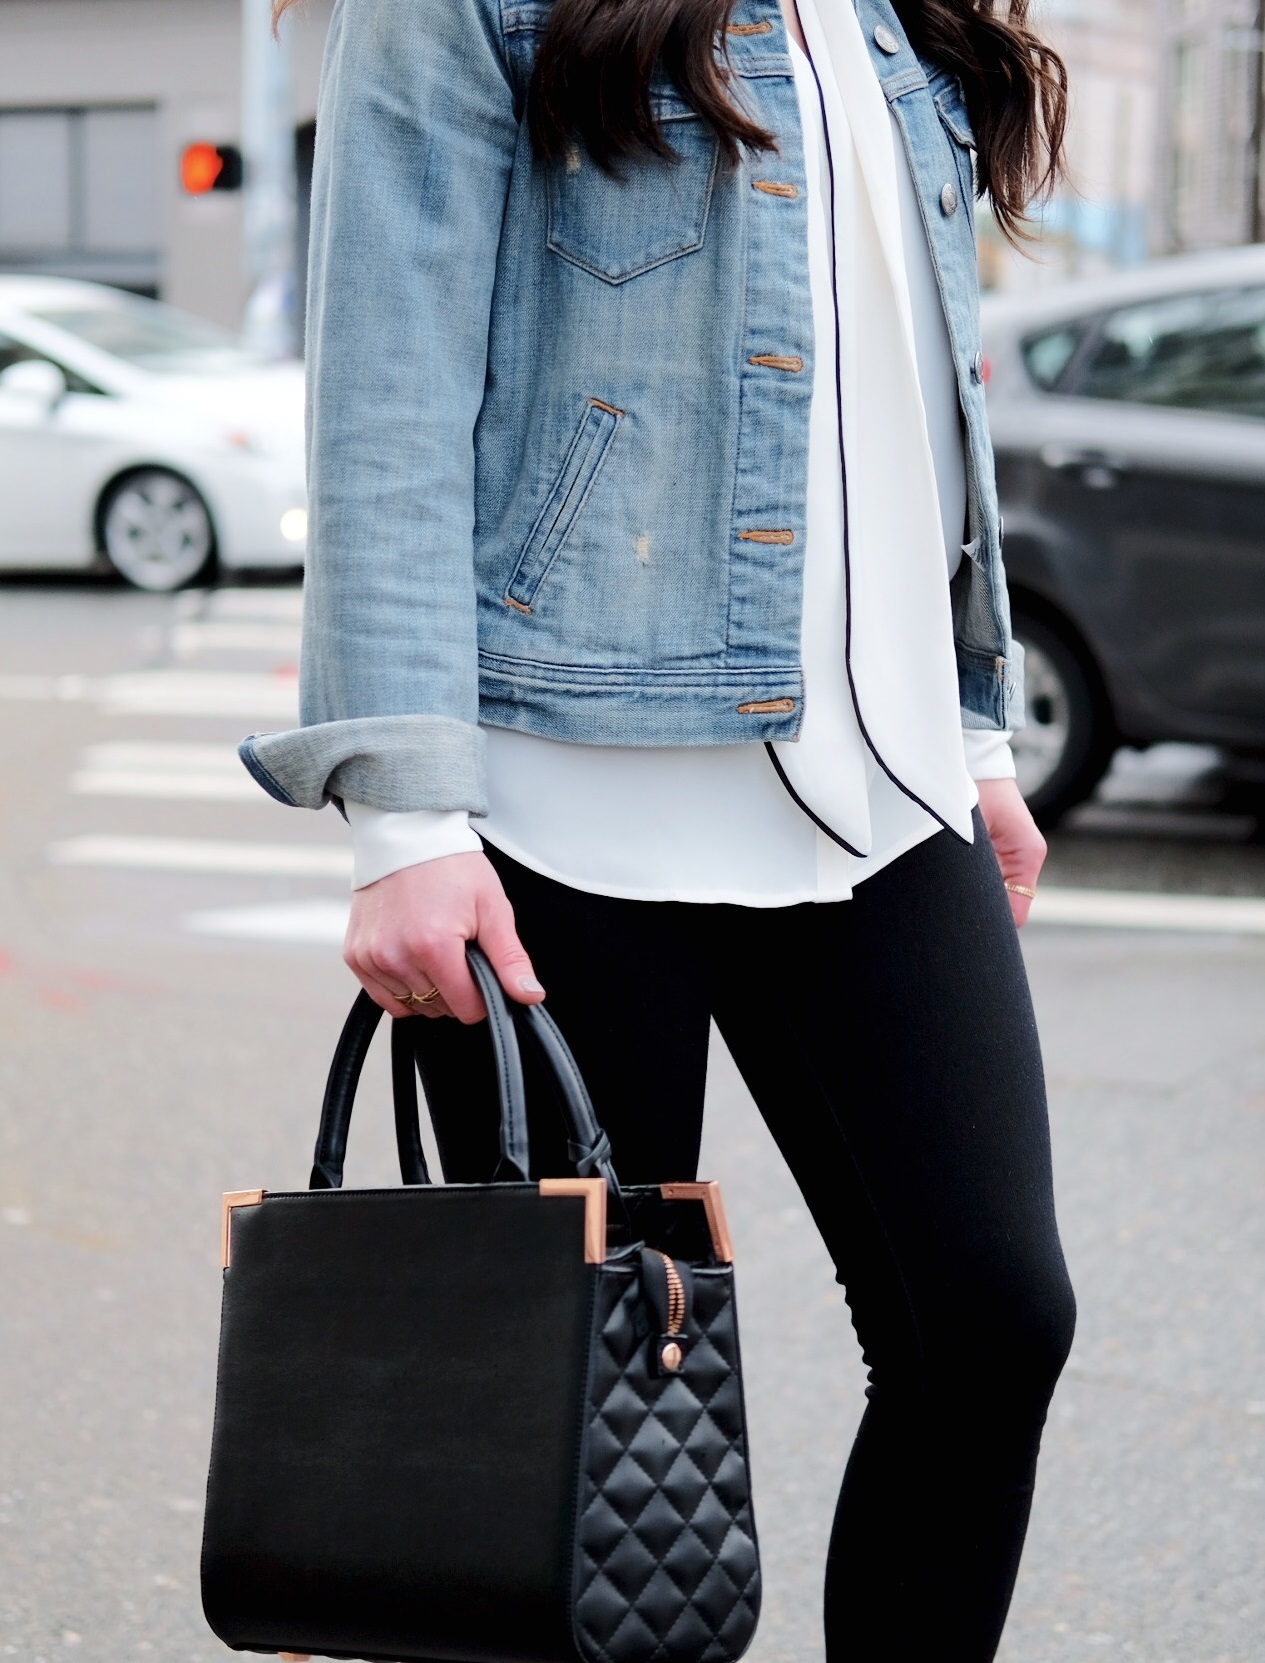 Cute spring outfit to wear to work.  J.Crew denim jacket, bow blouse, black skinny jeans, and Oliver Bilou handbag.